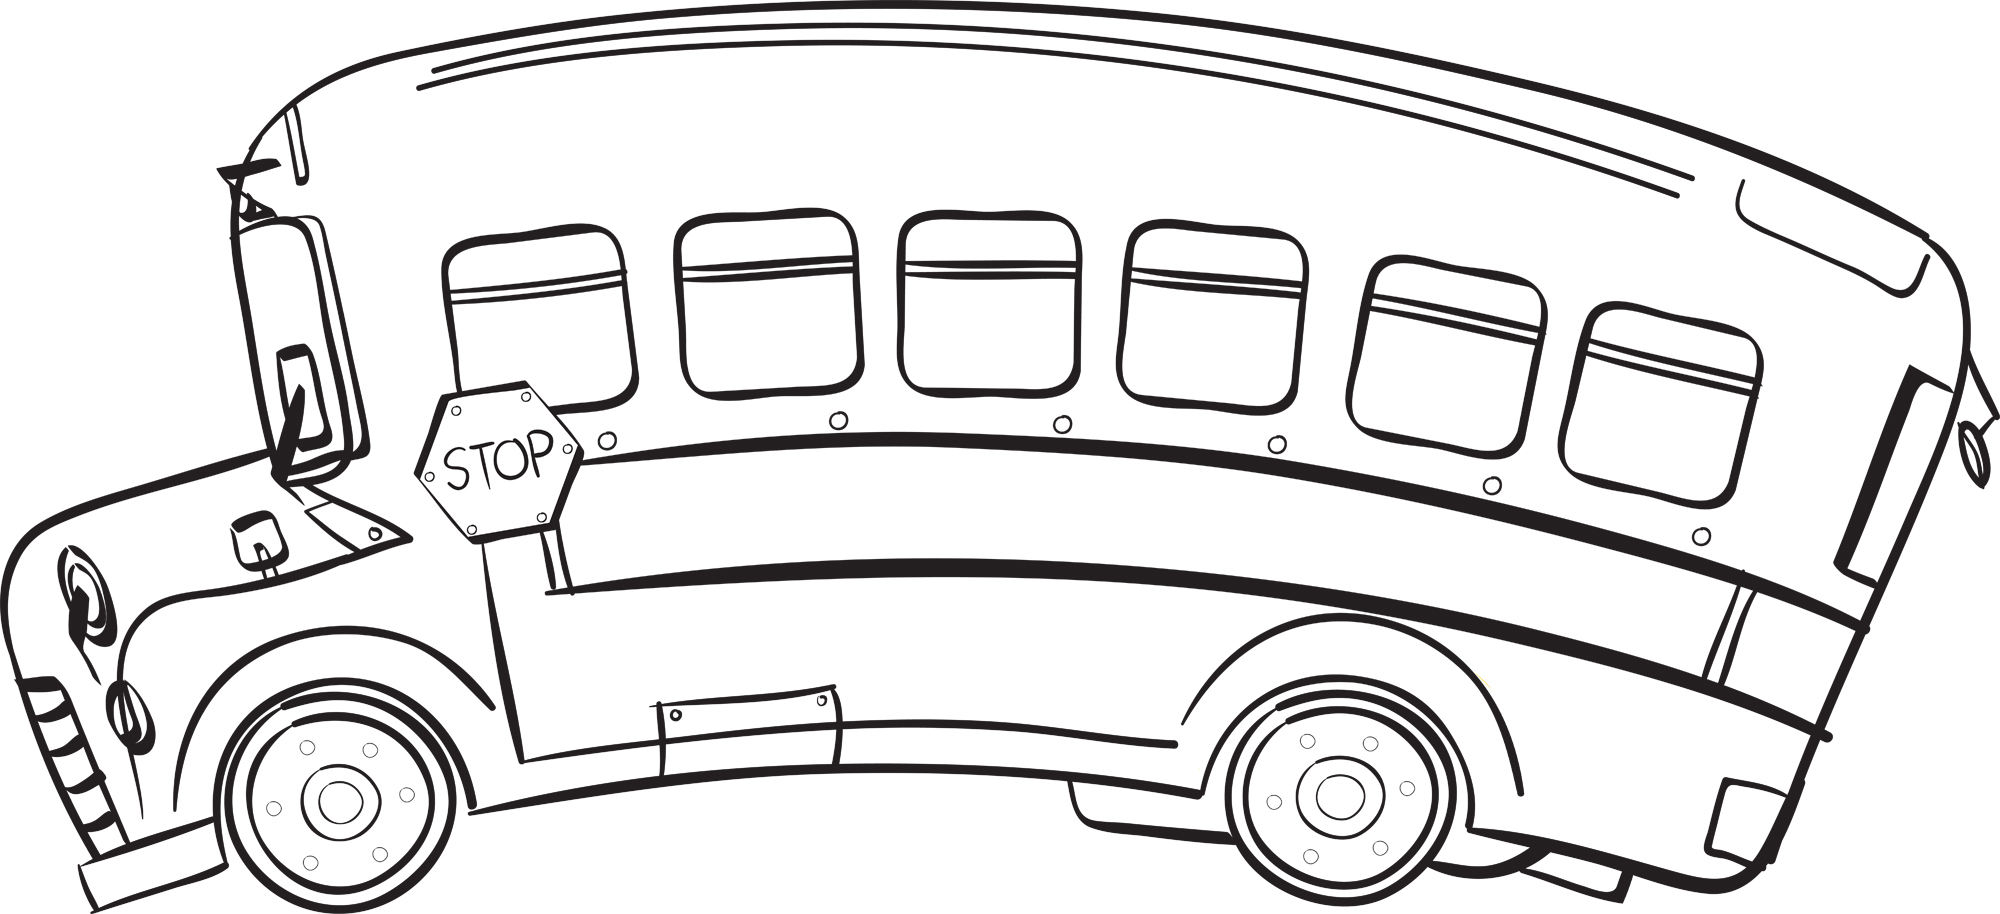 Free Bus Clipart Black And White, Download Free Clip Art.